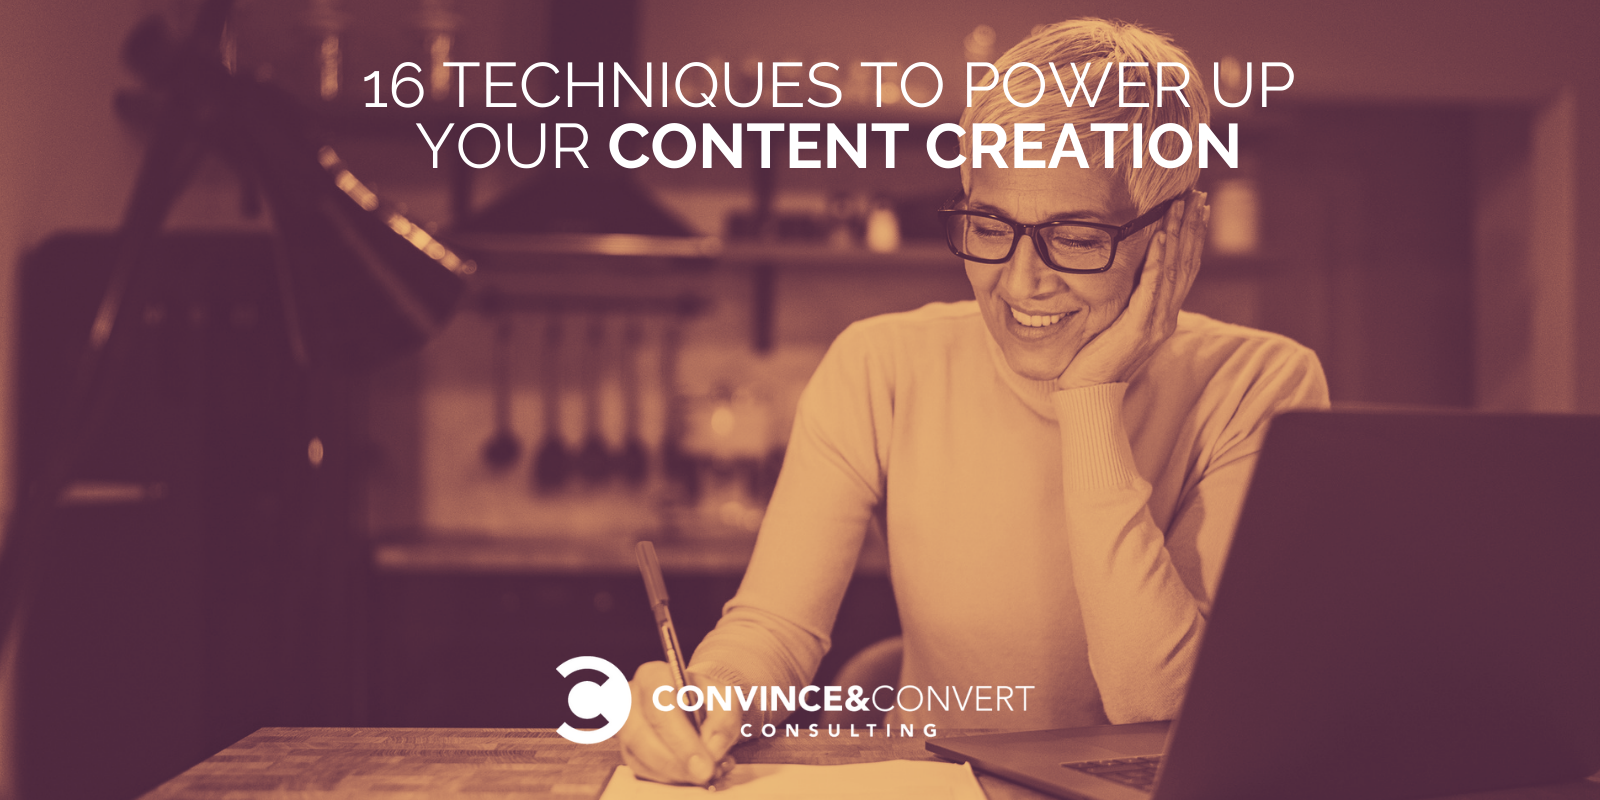 16 Techniques to Power Up Your Content Creation